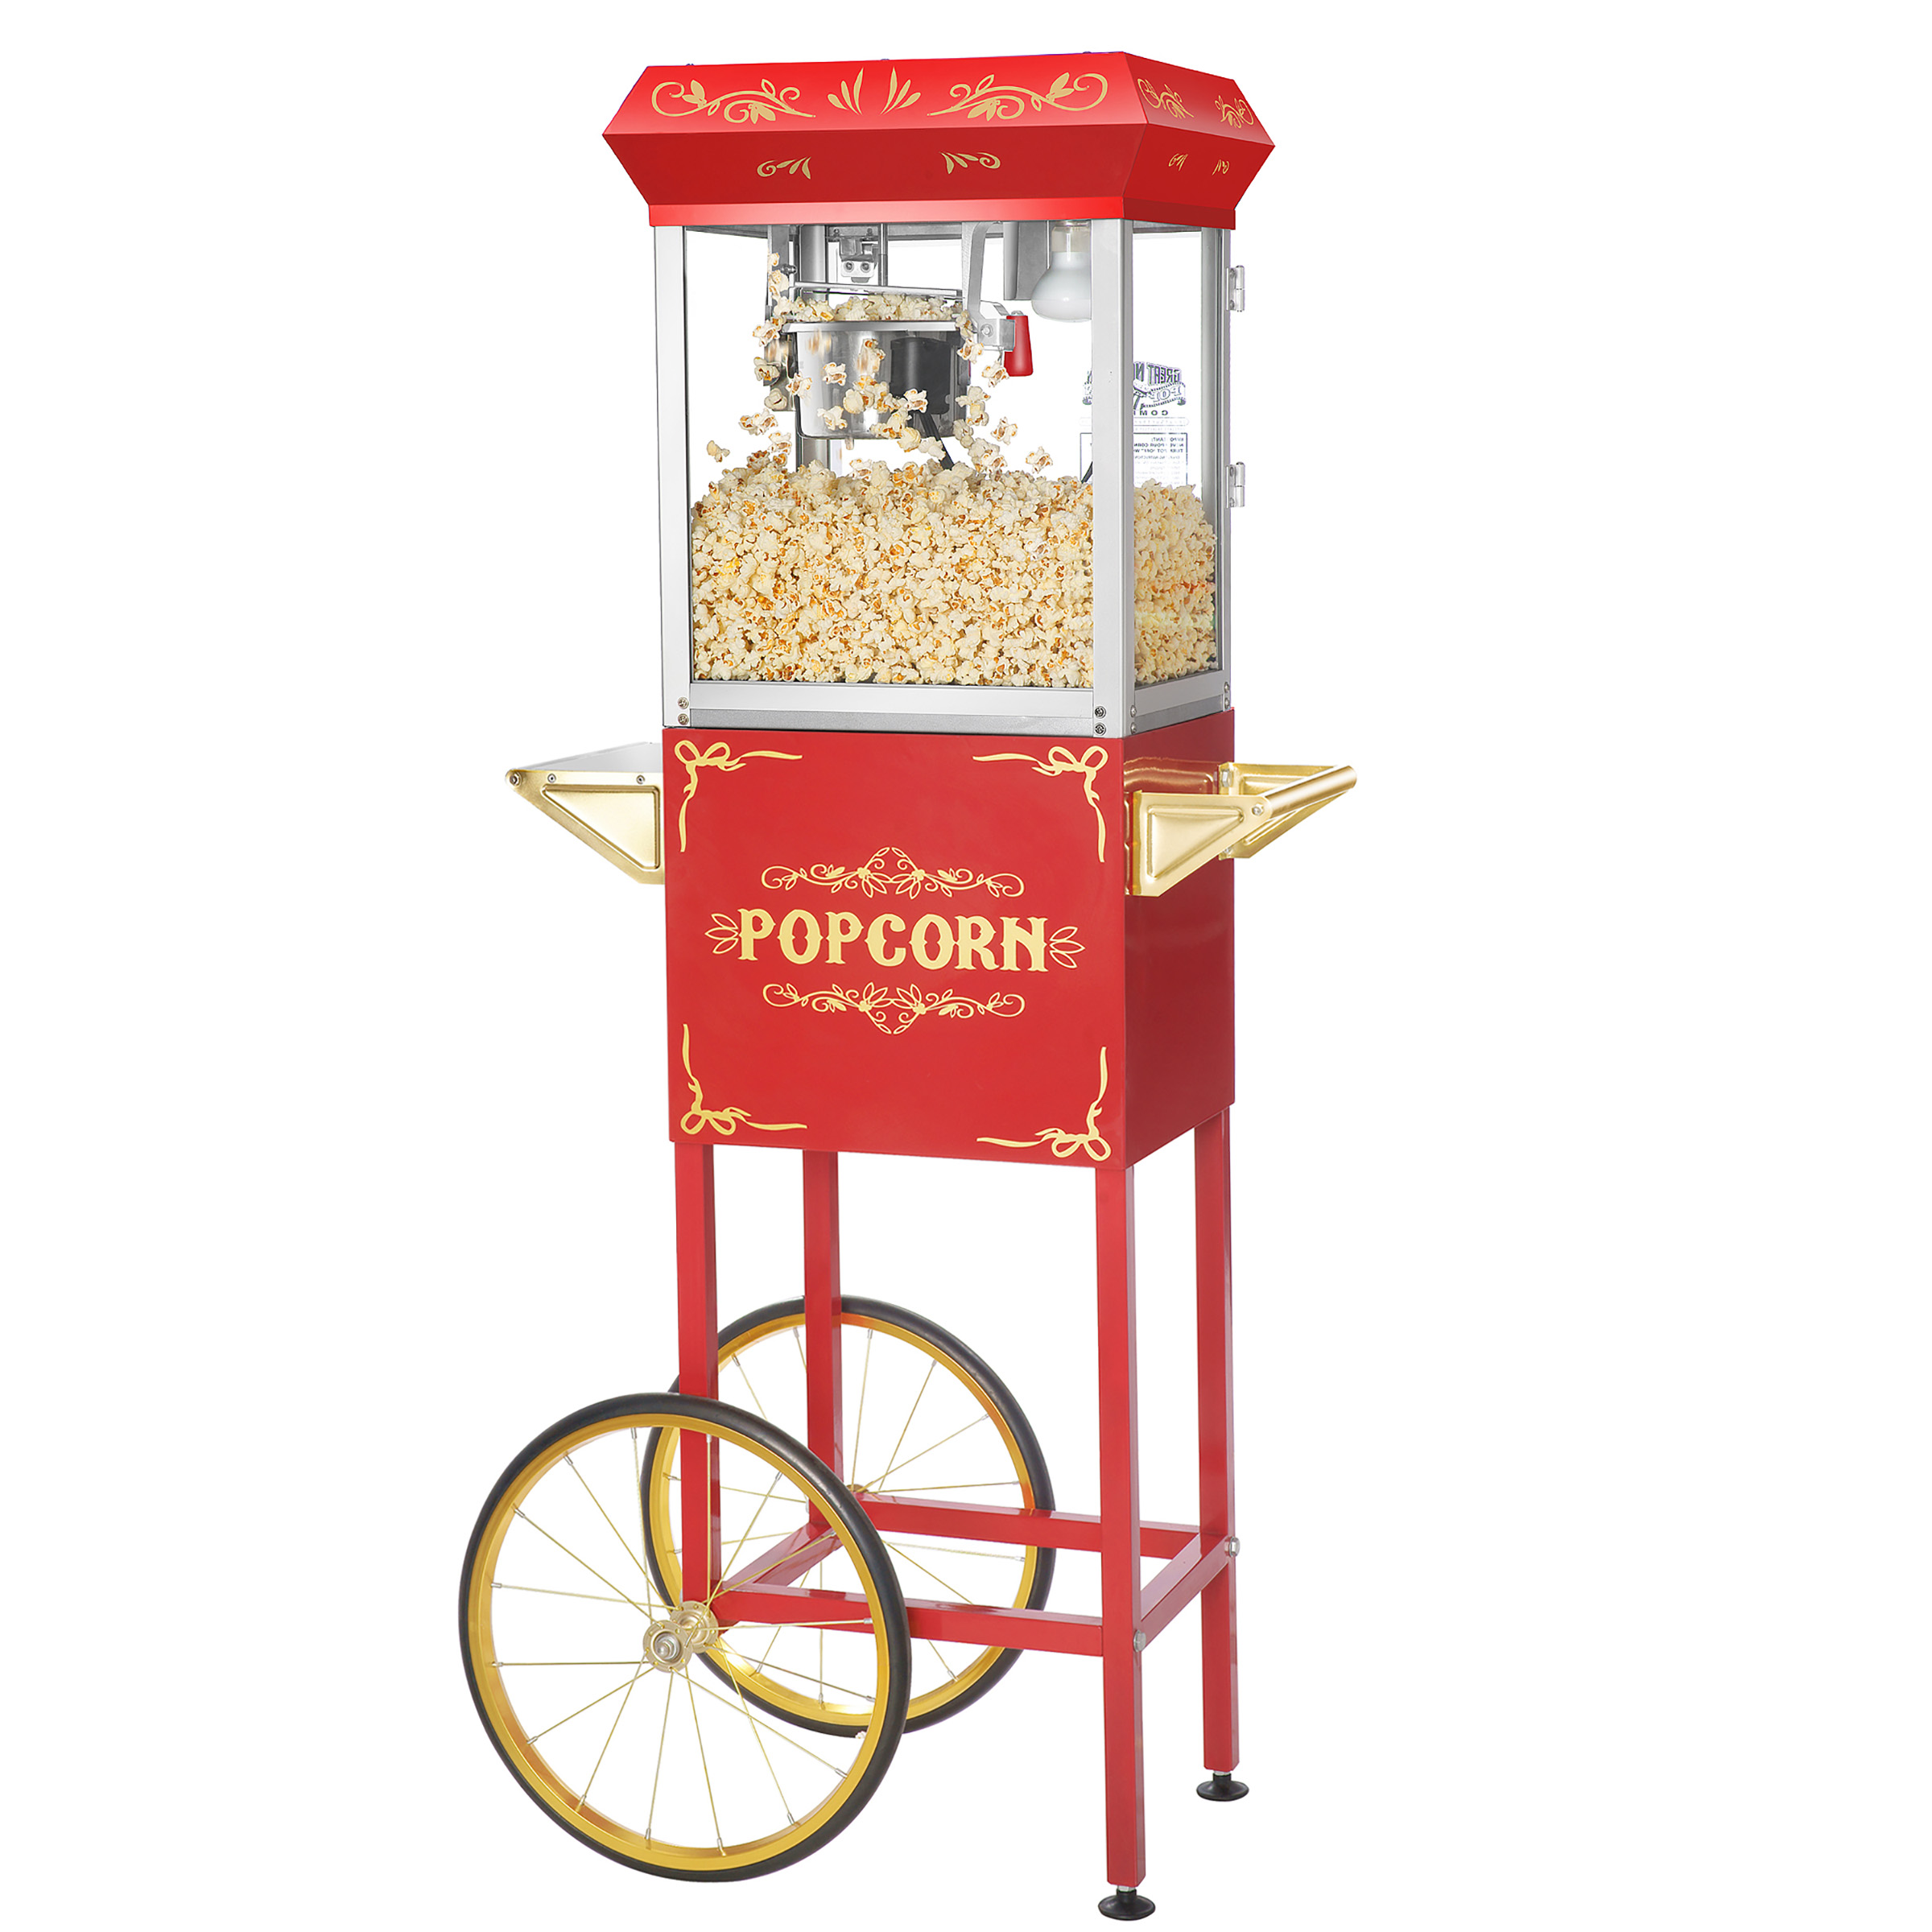 Foundation Popcorn Popper Machine Cart with Cart, 4 Ounce by Great Northern Popcorn